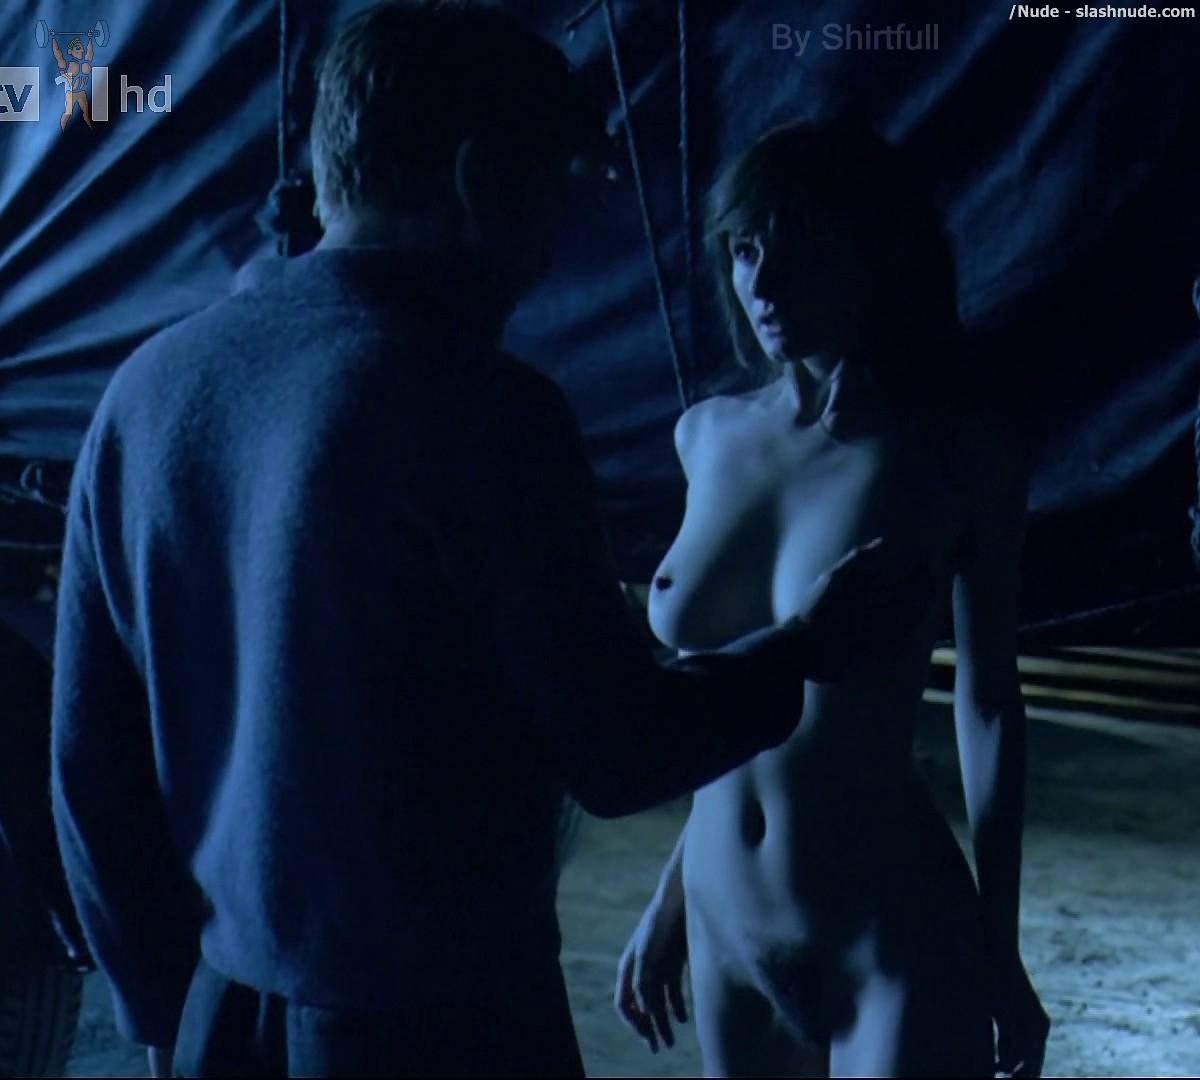 Are not Emily mortimer full frontal nudity consider, that